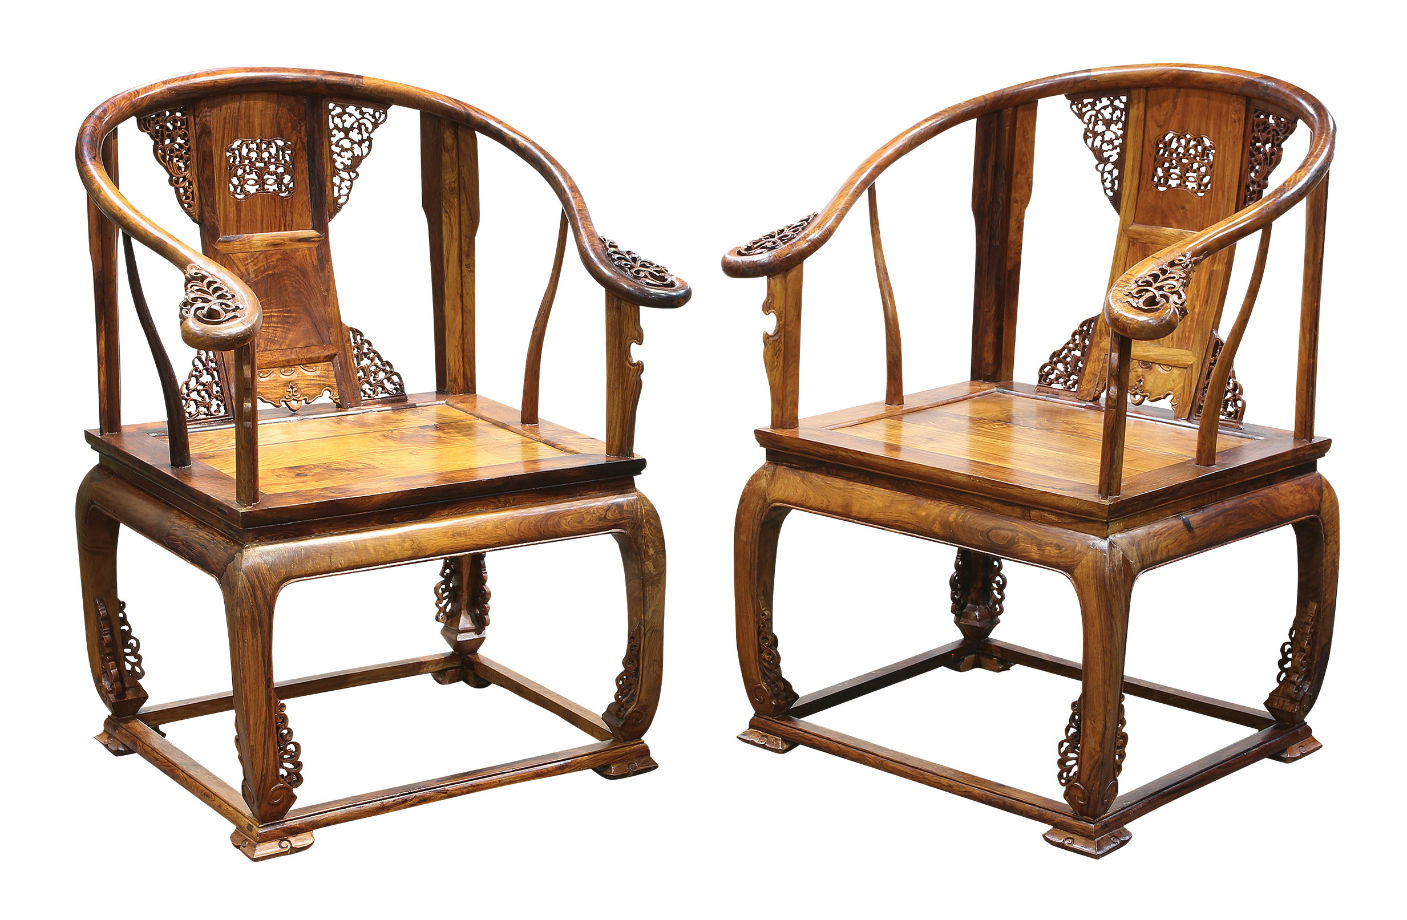 This Pair Of Huanghuali Horseshoe Armchairs Is Expected To Achieve  $35,000 $55,000. The Lot